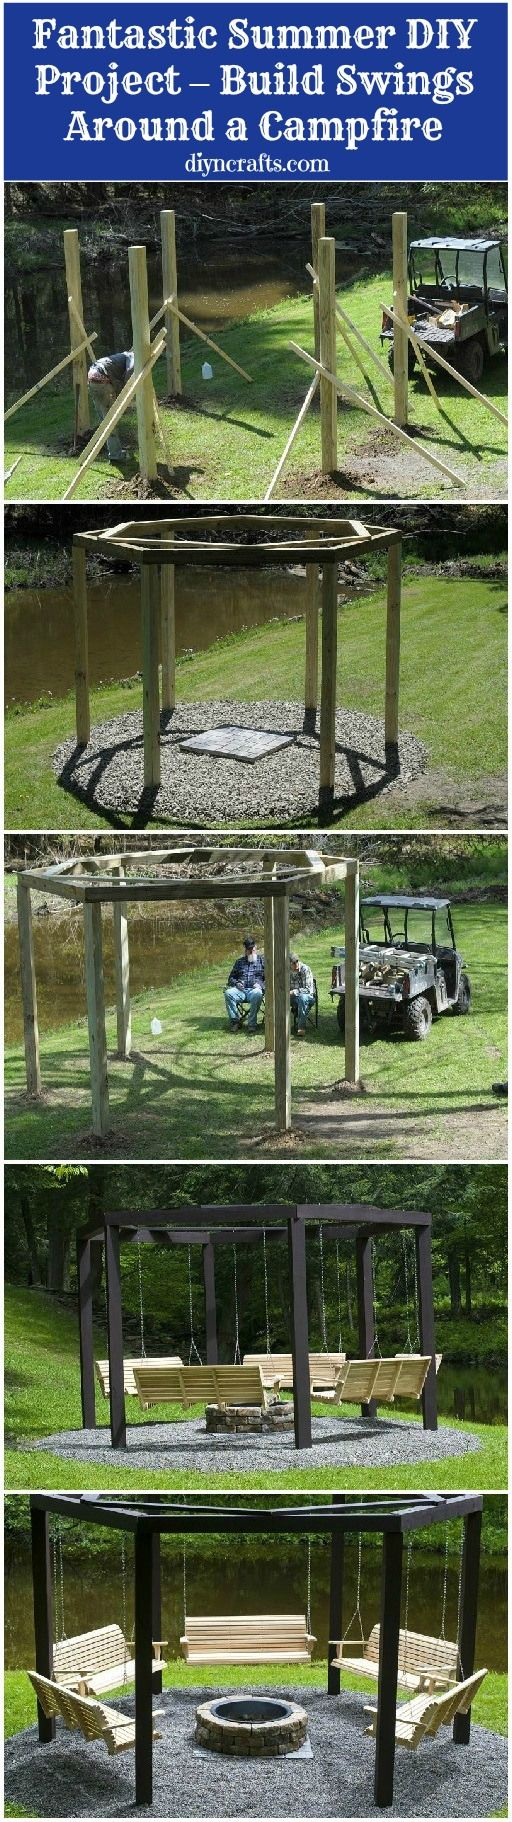 First project I will do when I get a house..